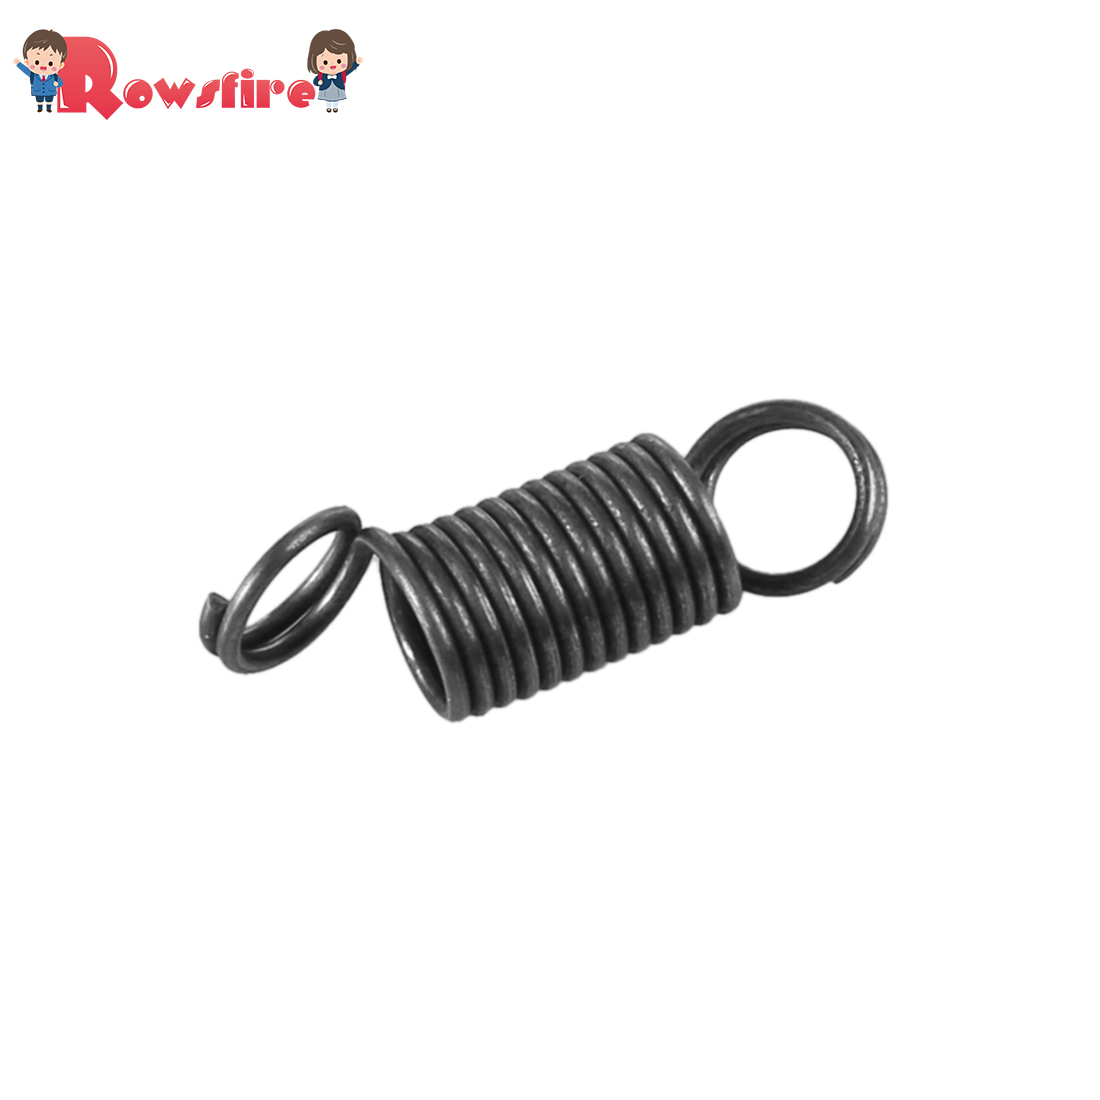 DIY Enhanced Tappet Spring For JM Gen.8 M4 Gearbox For Drop Shipping Hot